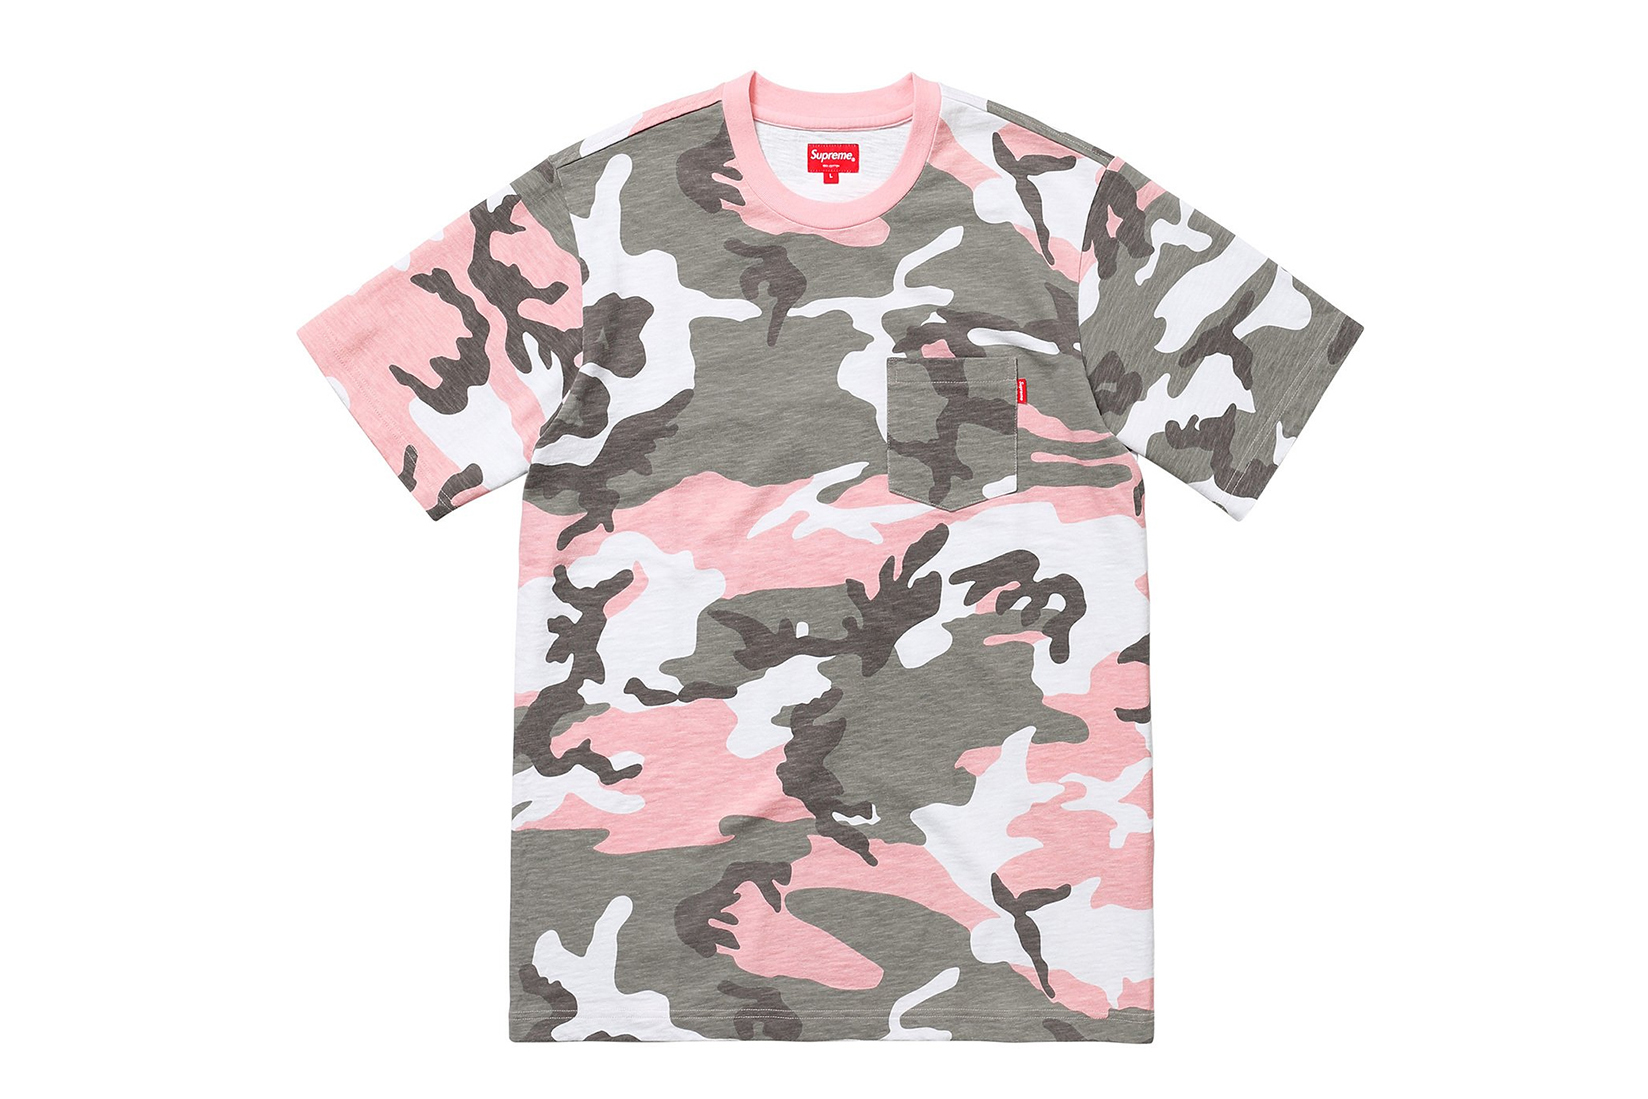 Supreme Unexpected Pink Camo Pocket Tee Sold Out All Cotton Slub Jersey Crewneck Chest Pocket Logo Spring/Sumer 2018 Soho London